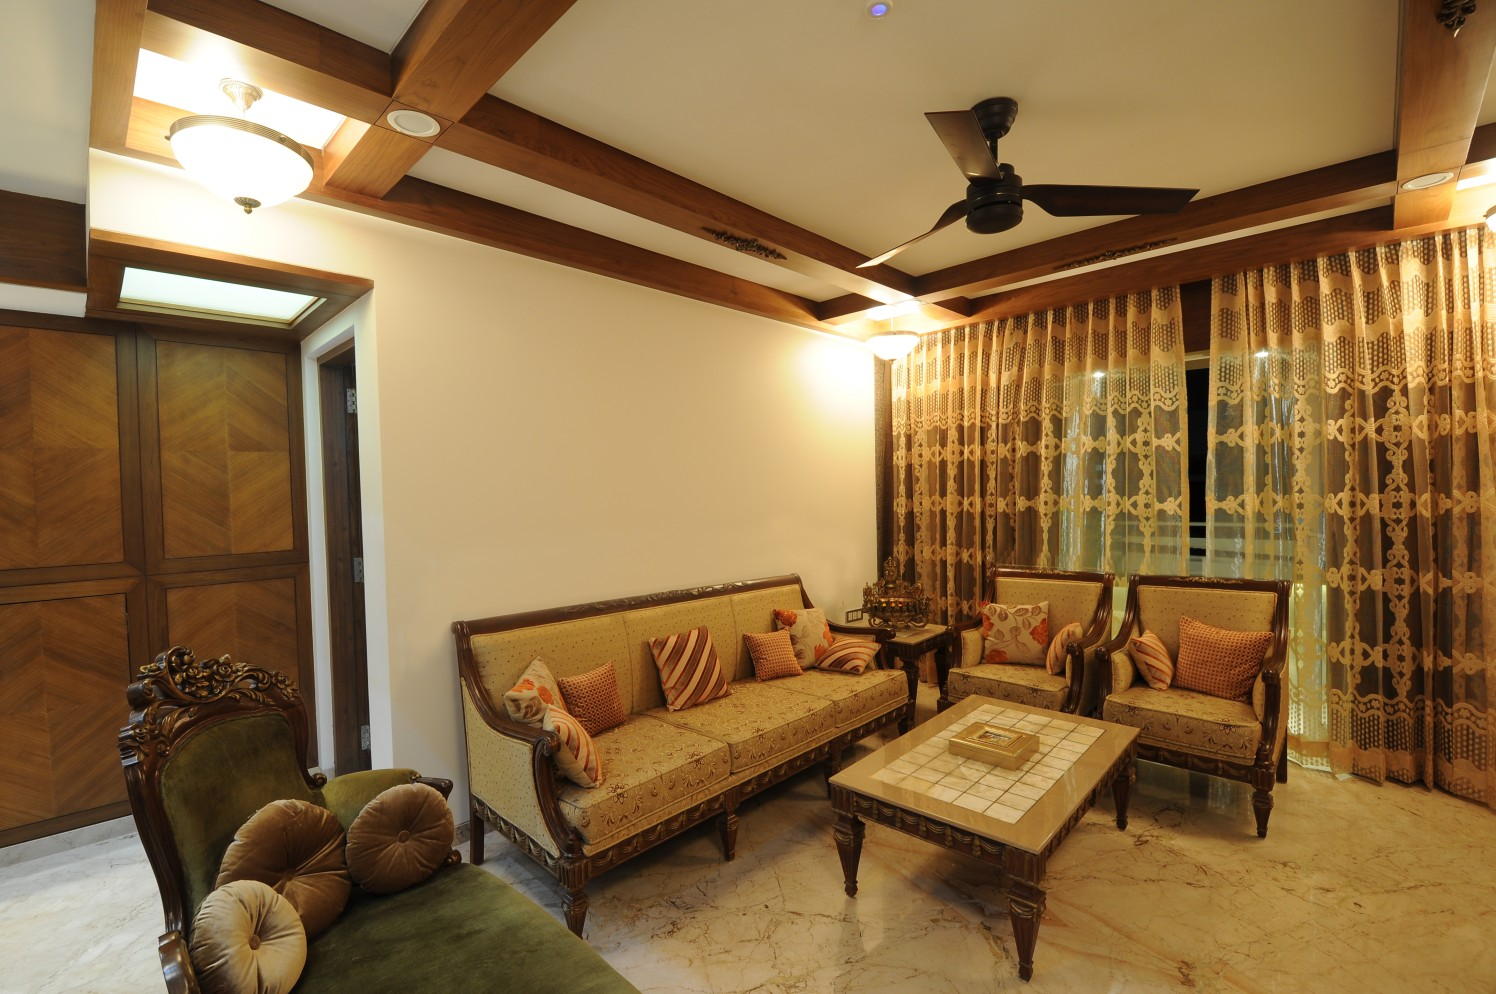 Living Room With Traditional Furniture And Woodwork On False Ceiling by Dhananjay Ramdas Living-room Traditional | Interior Design Photos & Ideas